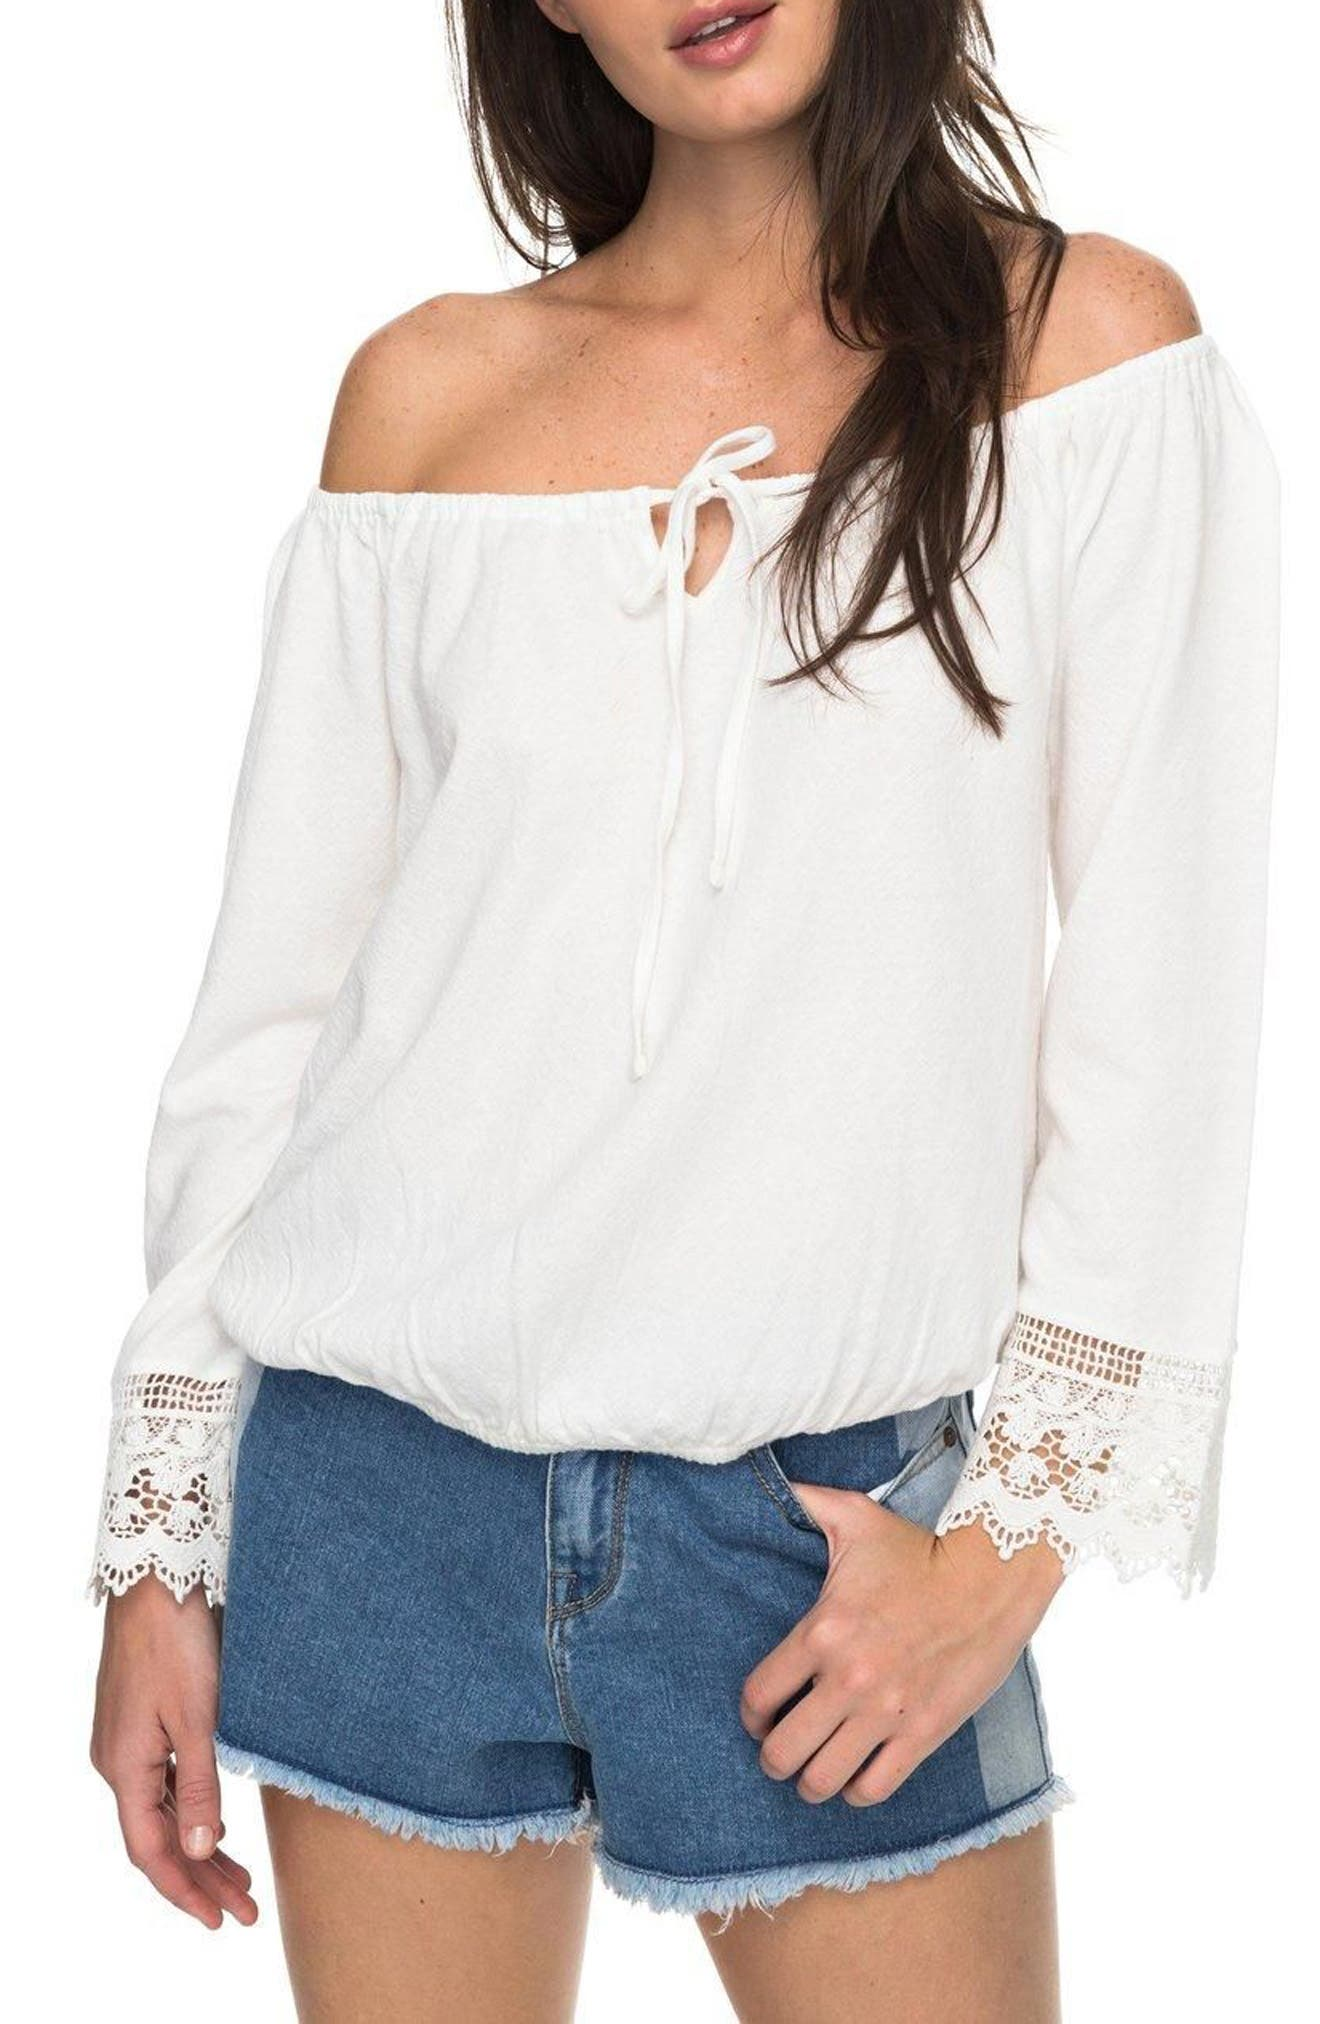 Alternate Image 1 Selected - Roxy Retro Revival Off the Shoulder Top